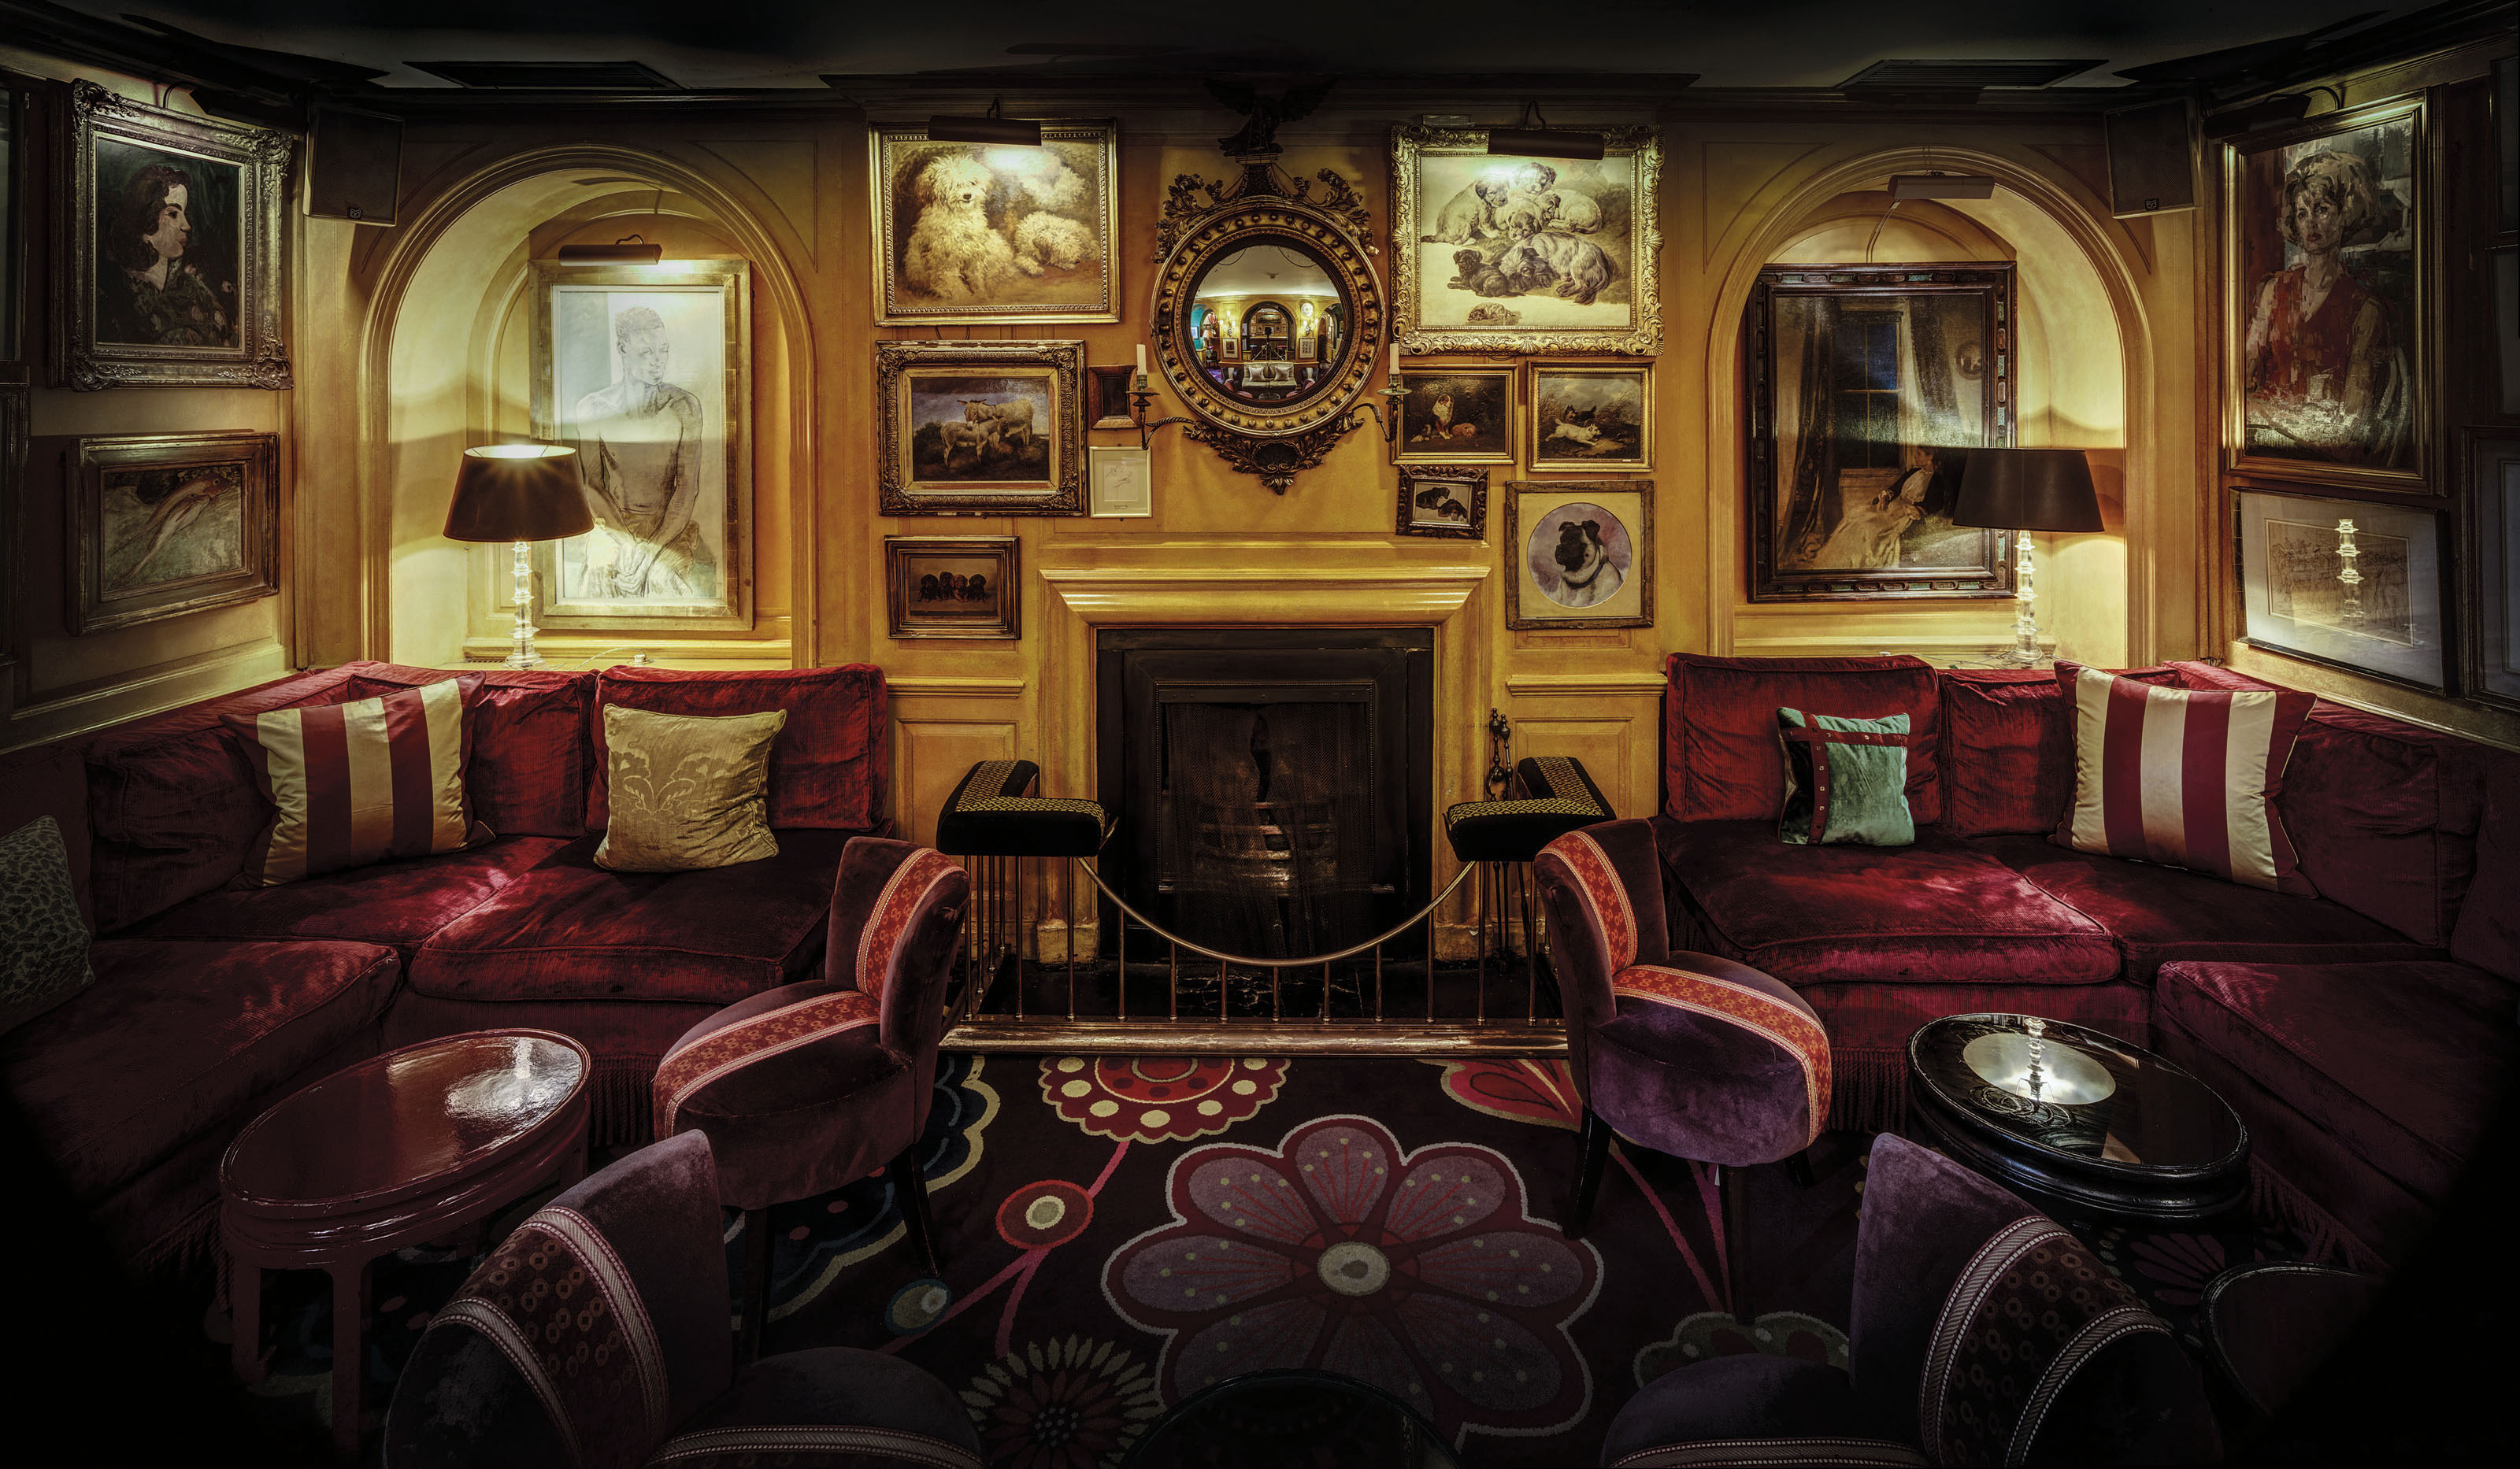 Interior of the Old Annabel's